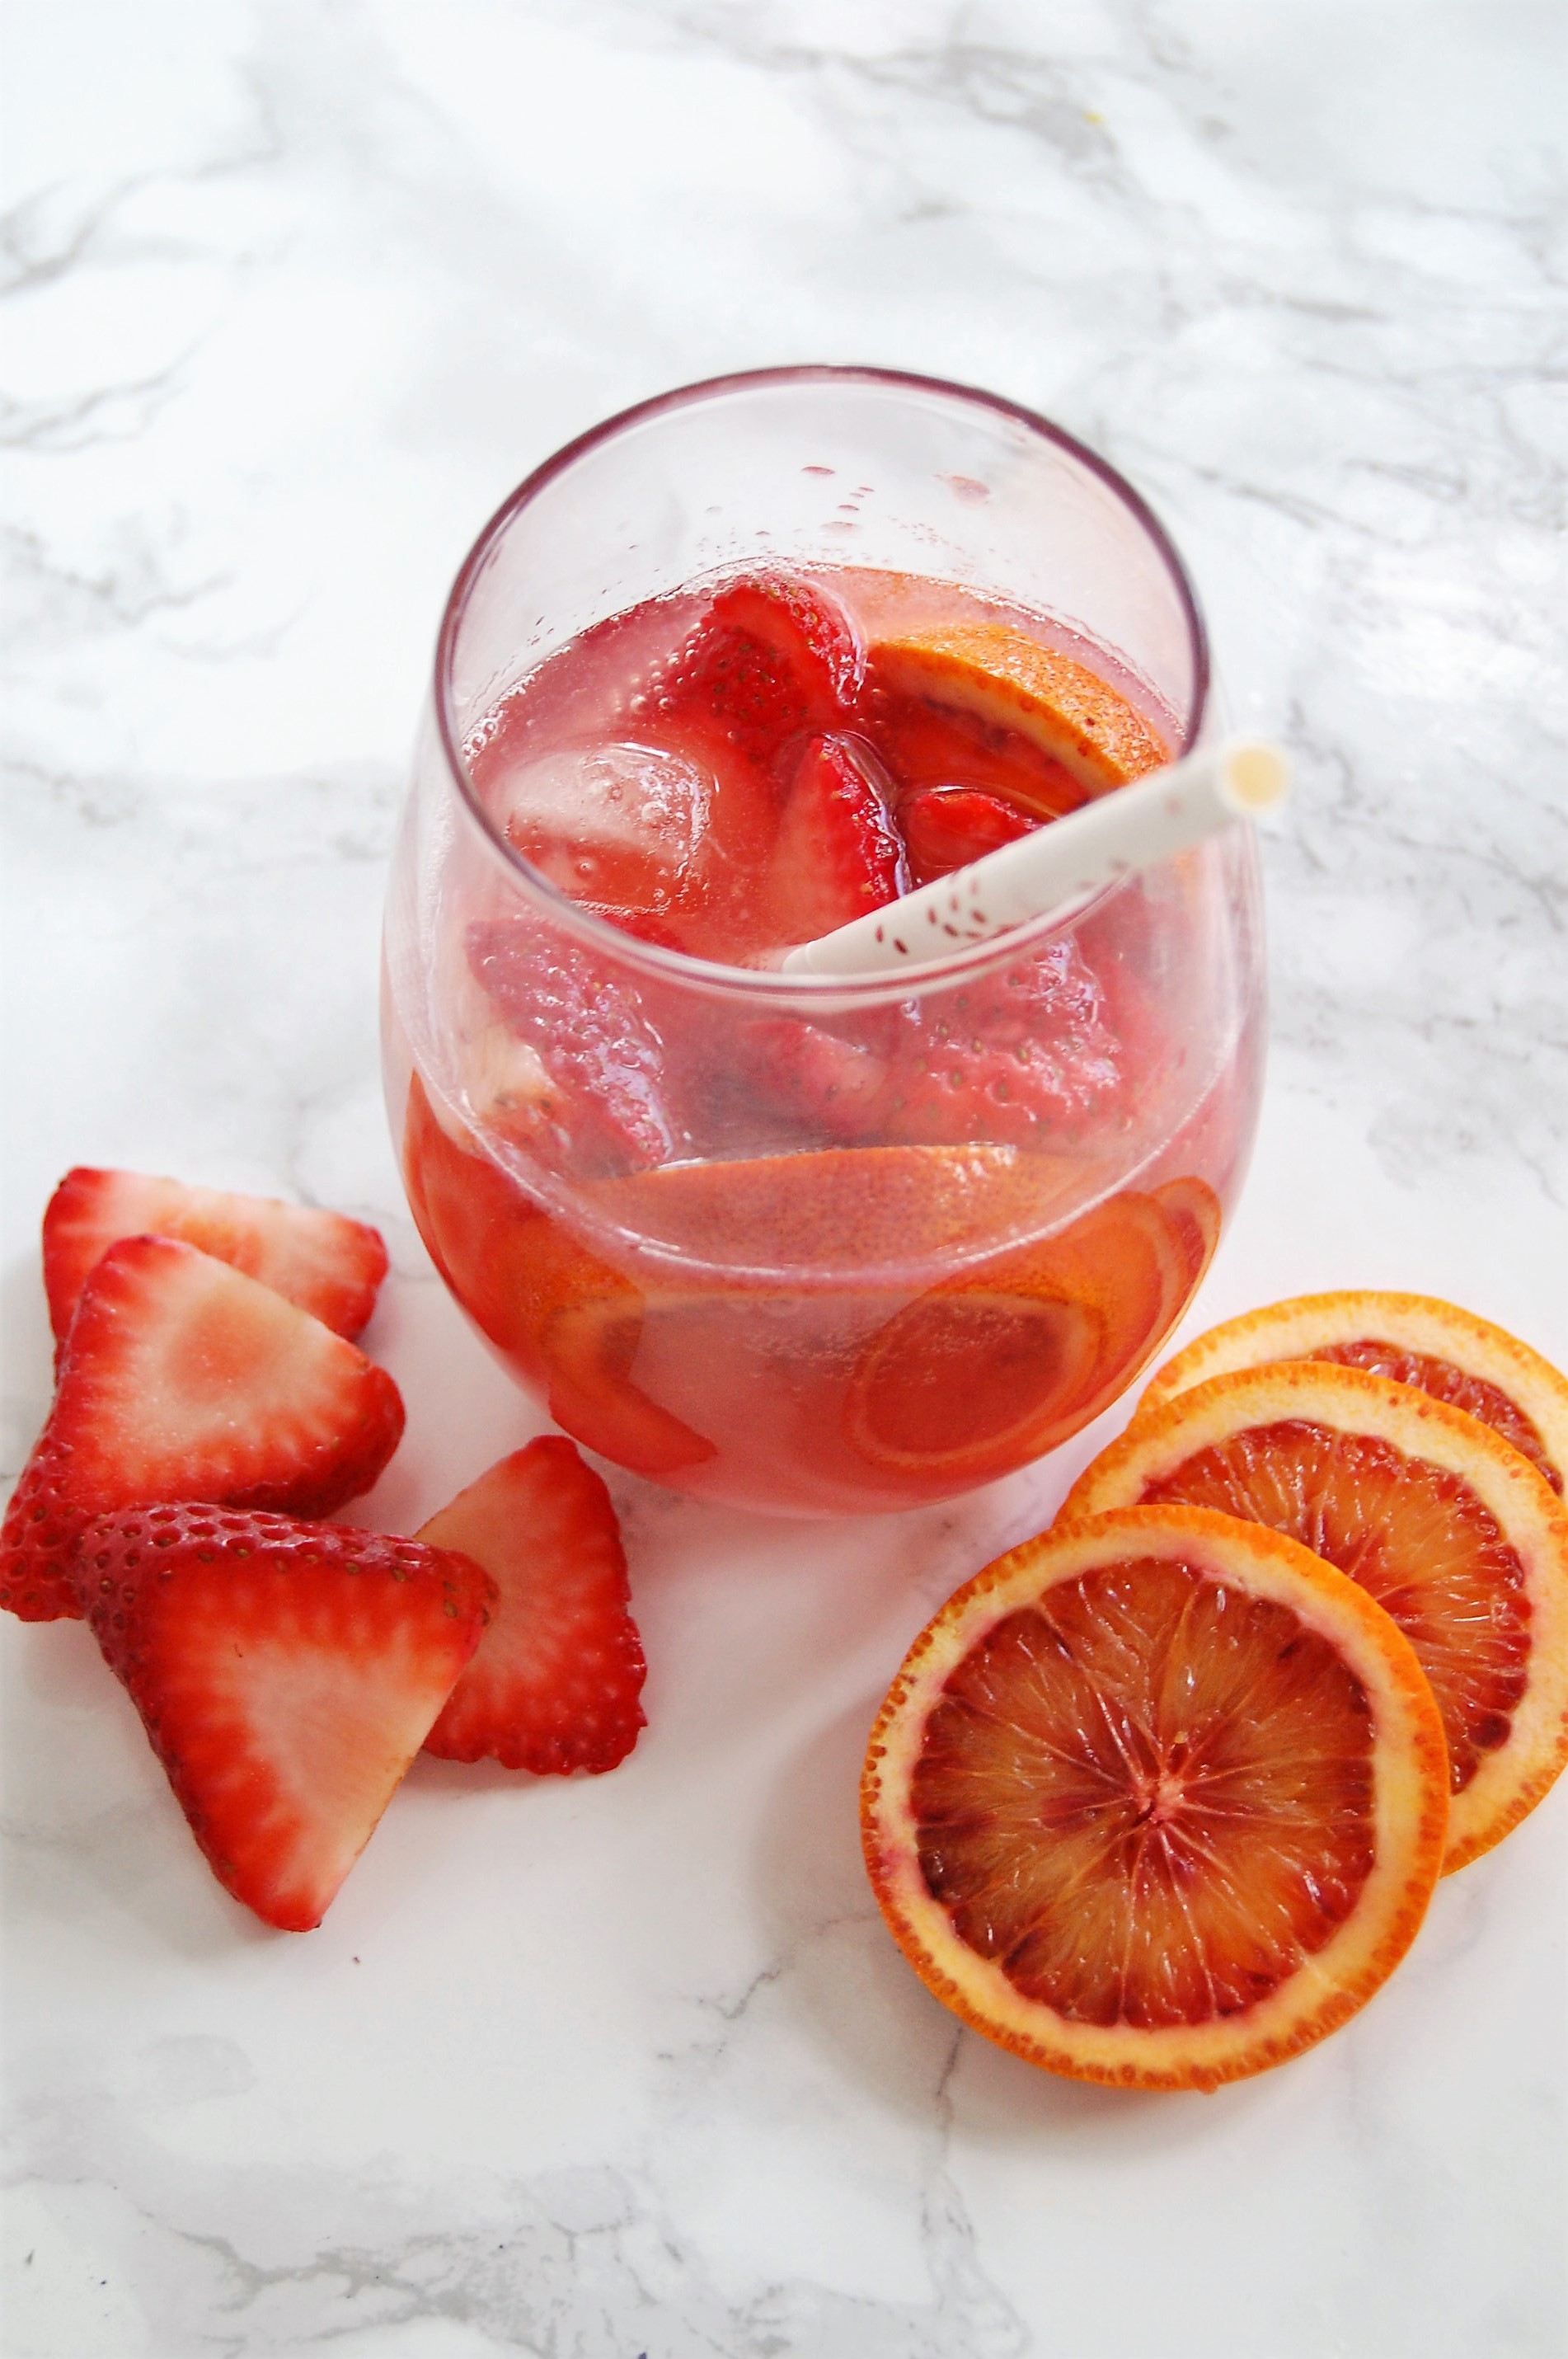 Strawberry Blood Orange Mocktail (and more!) - Lindsey Janiero, RDNutrition to Fit